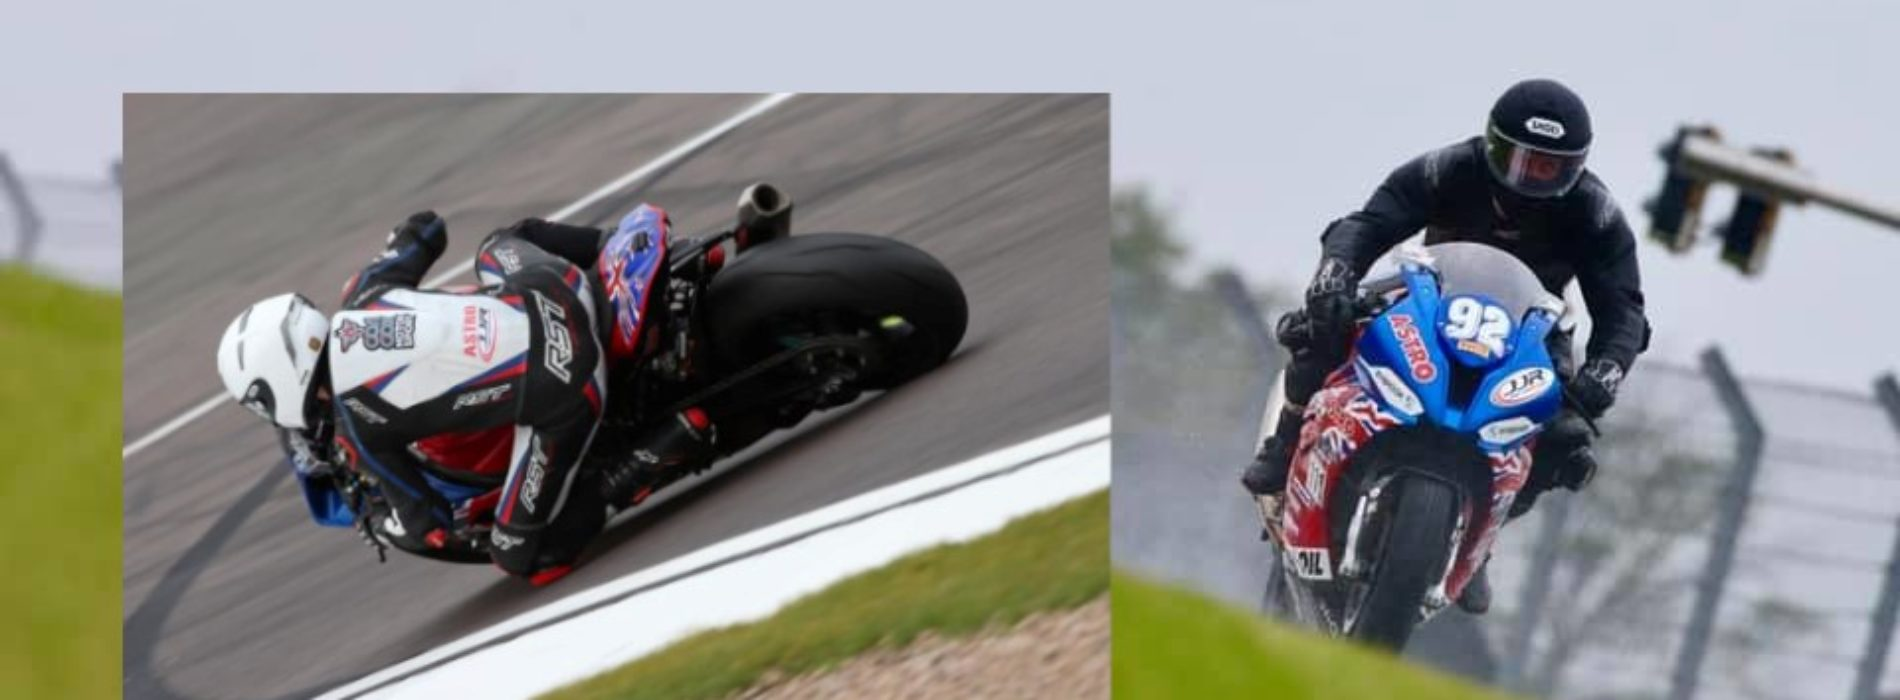 Damon Rees and Shane Richardson rode waves of change at BSB Round 5 at Donington Park last weekend